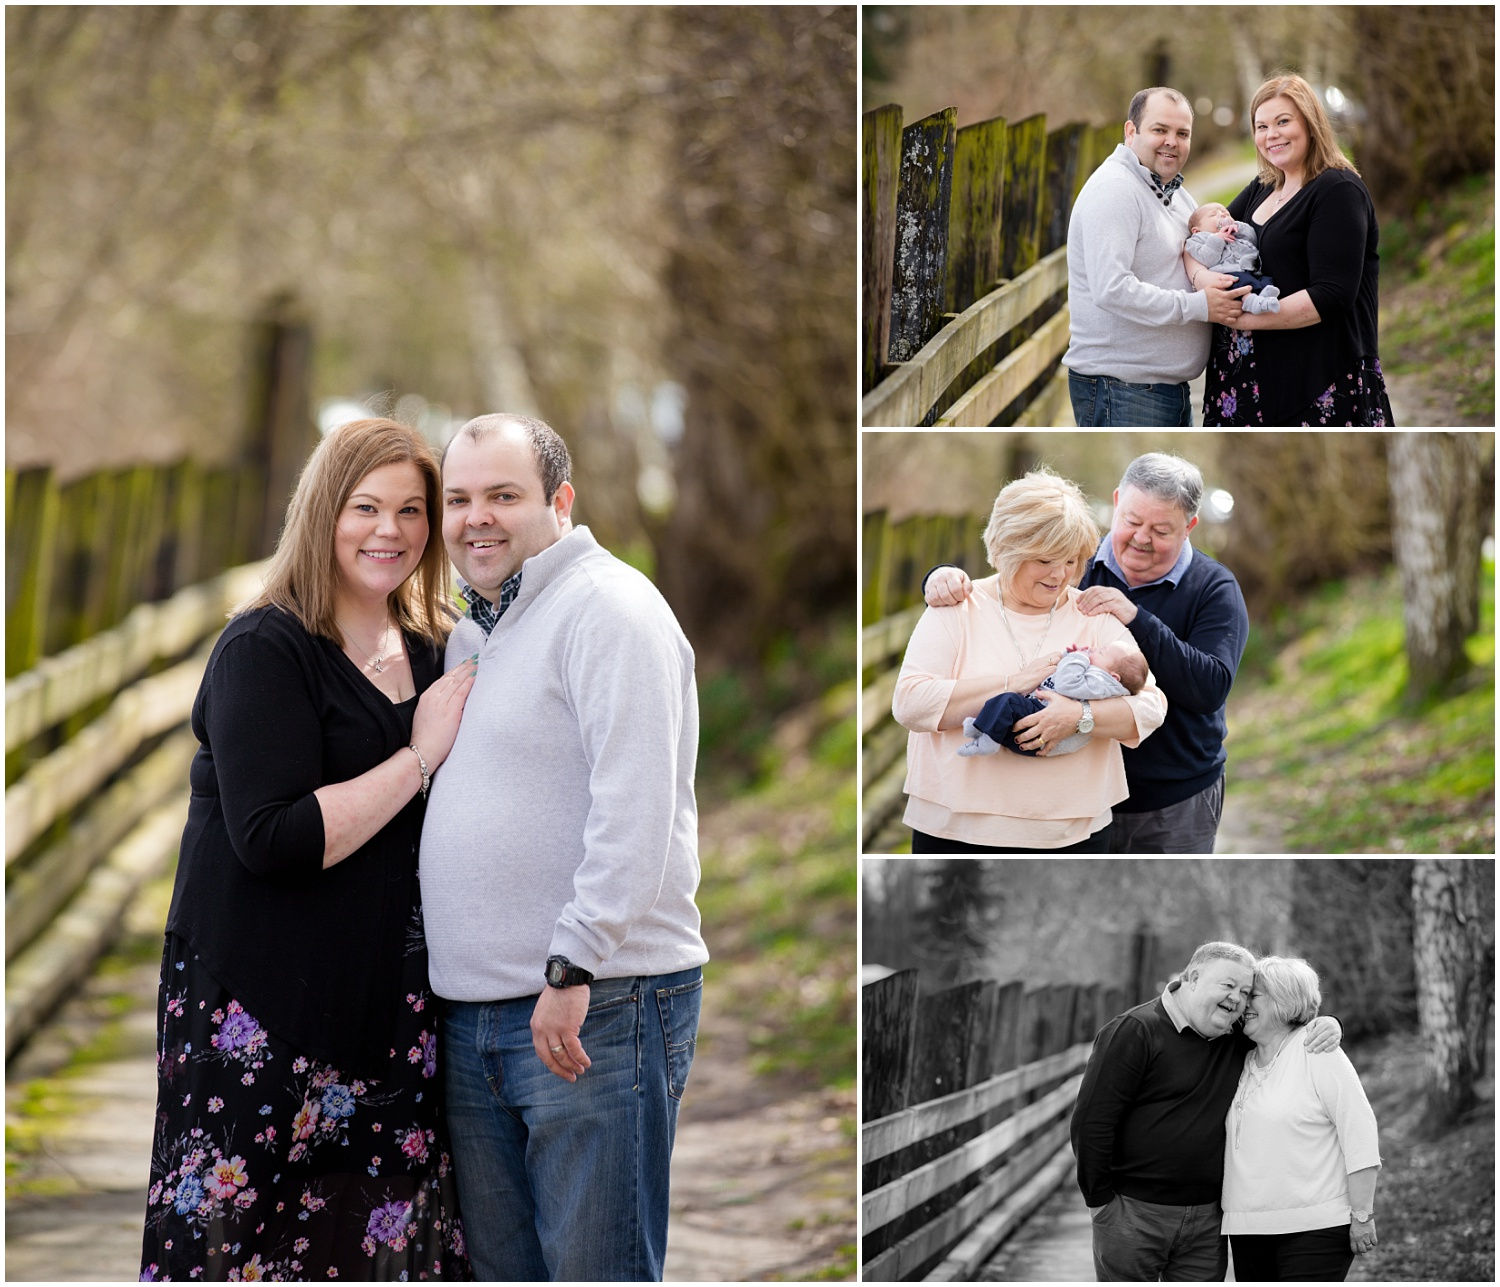 Amazing Day Photography - Fort Langley Family Session - Langley Family Photographer (7).jpg